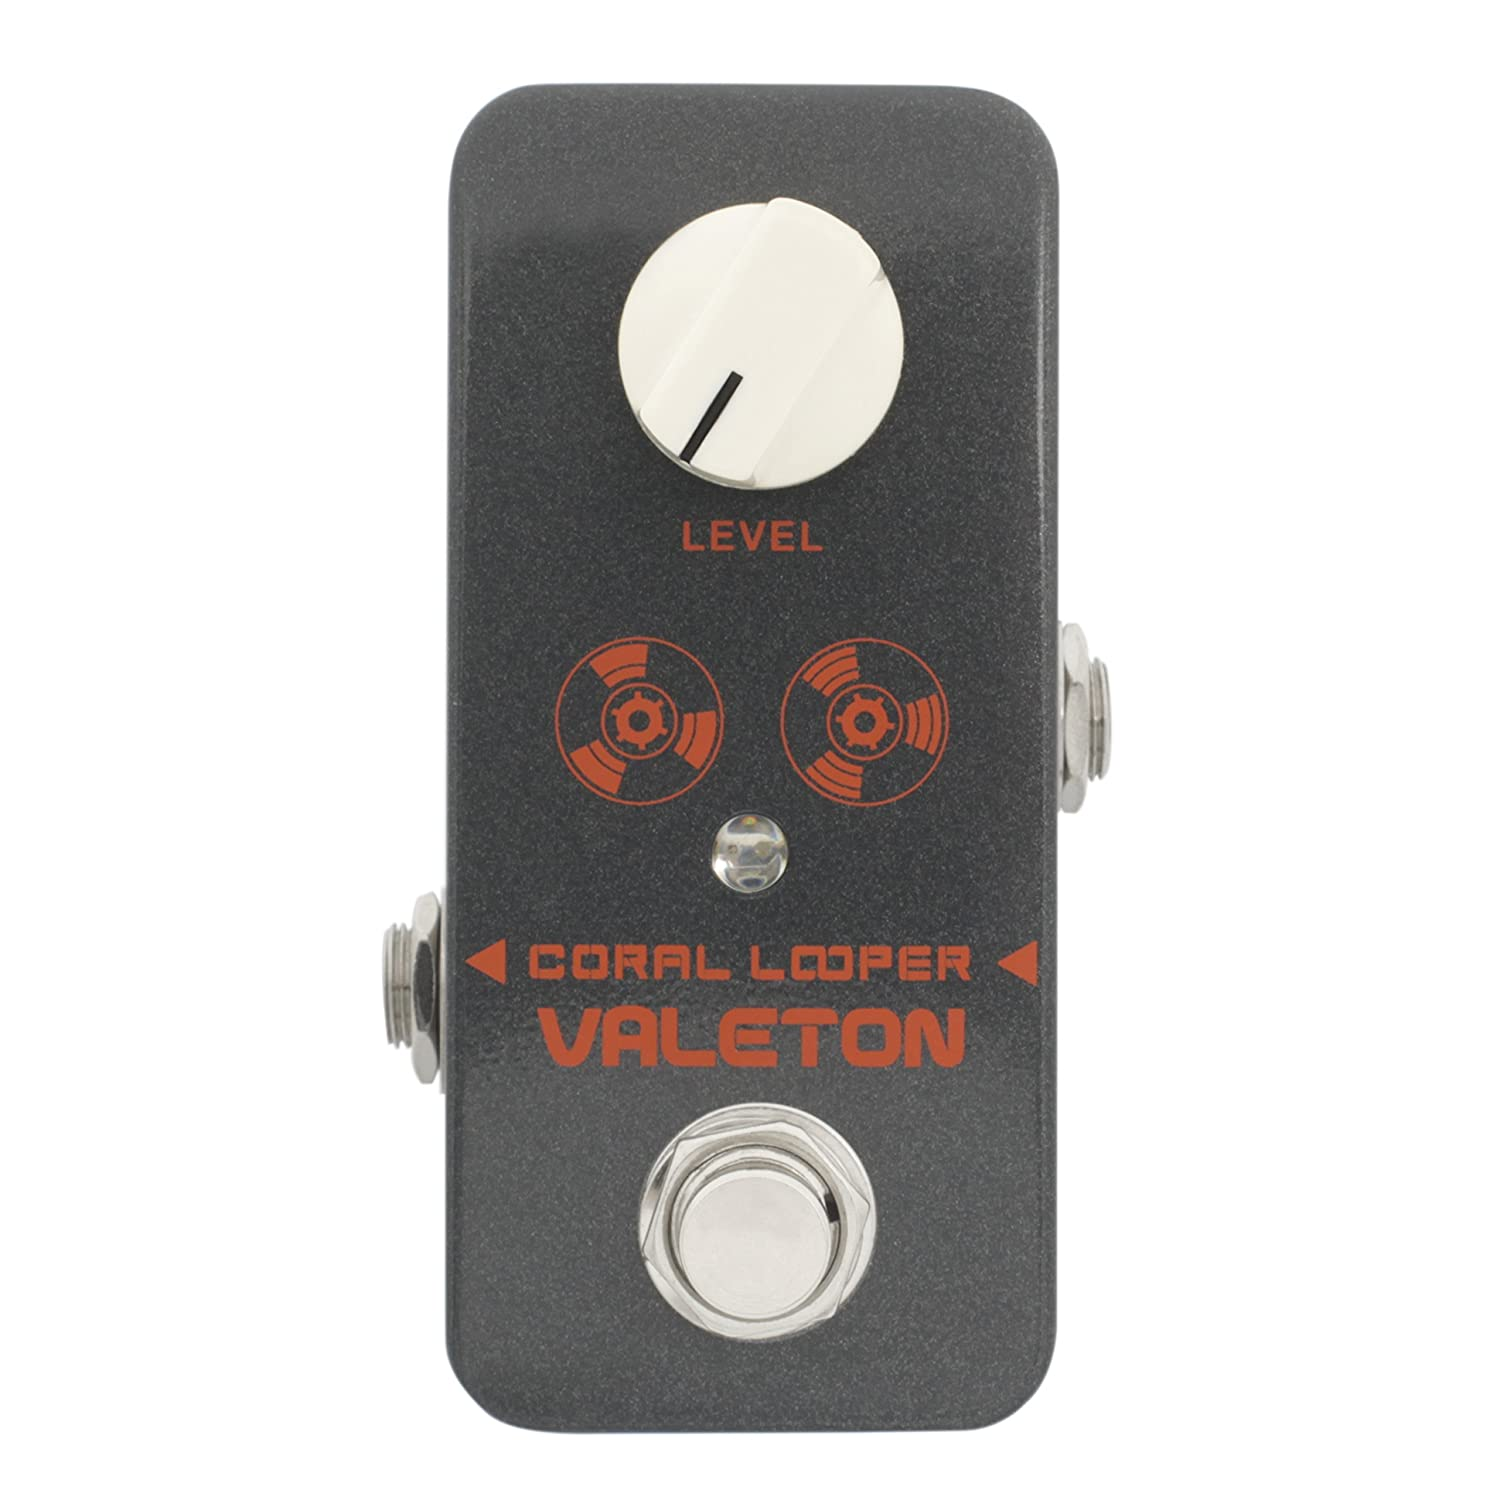 Valeton CLP-1 Coral Looper 10 Minutes Loop Station Guitar Effects Pedal